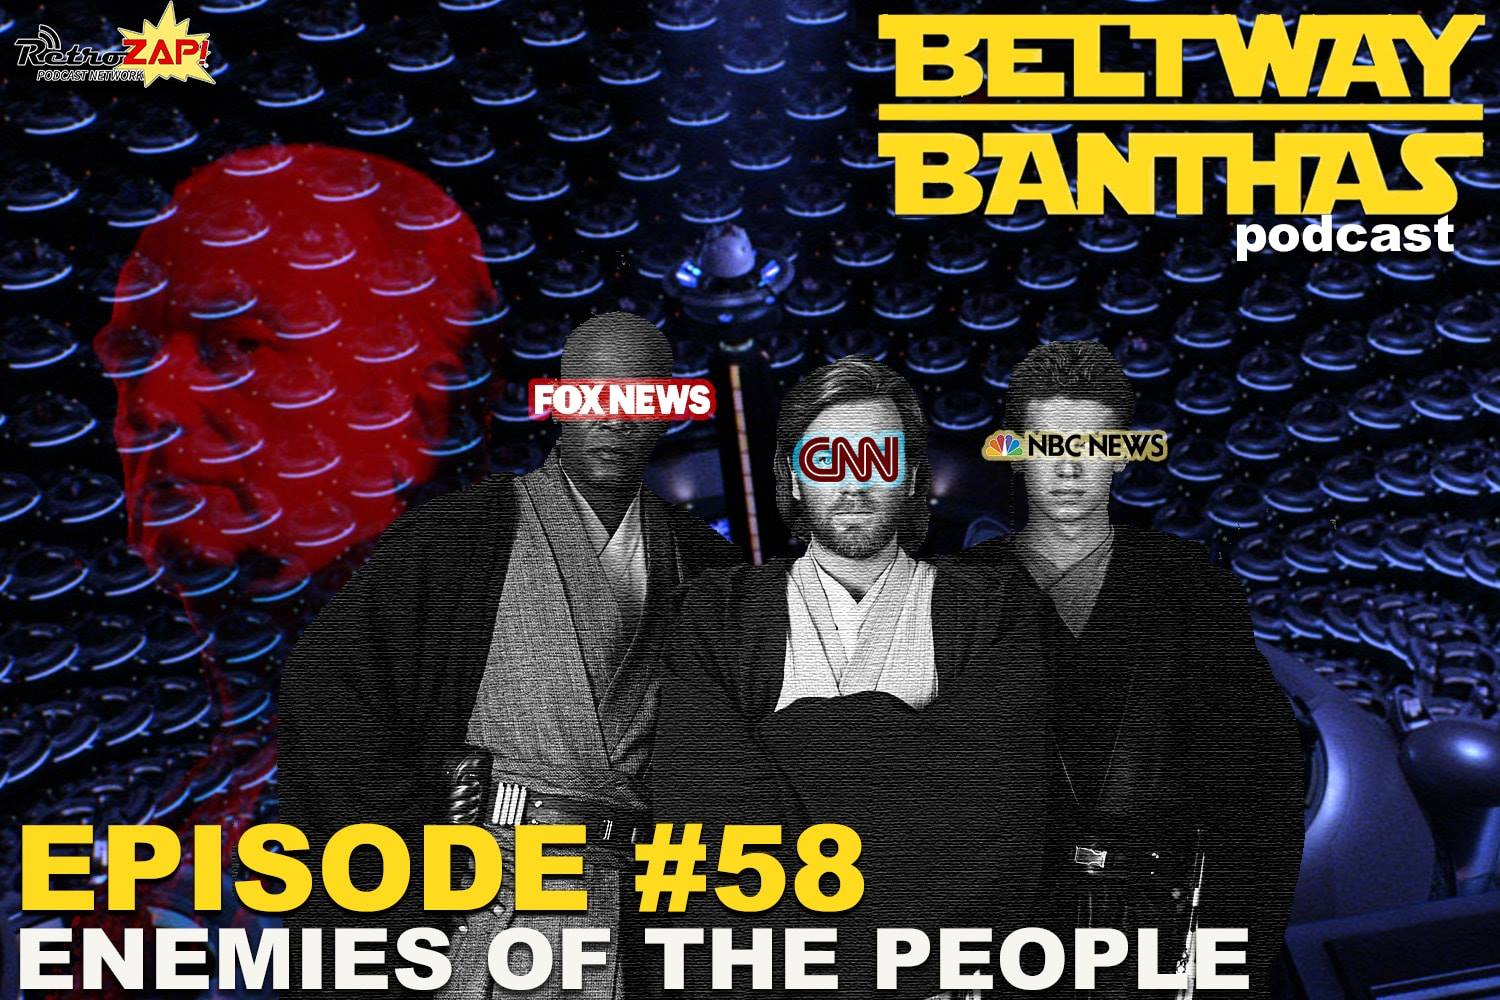 Beltway Banthas #58: Enemies of the People